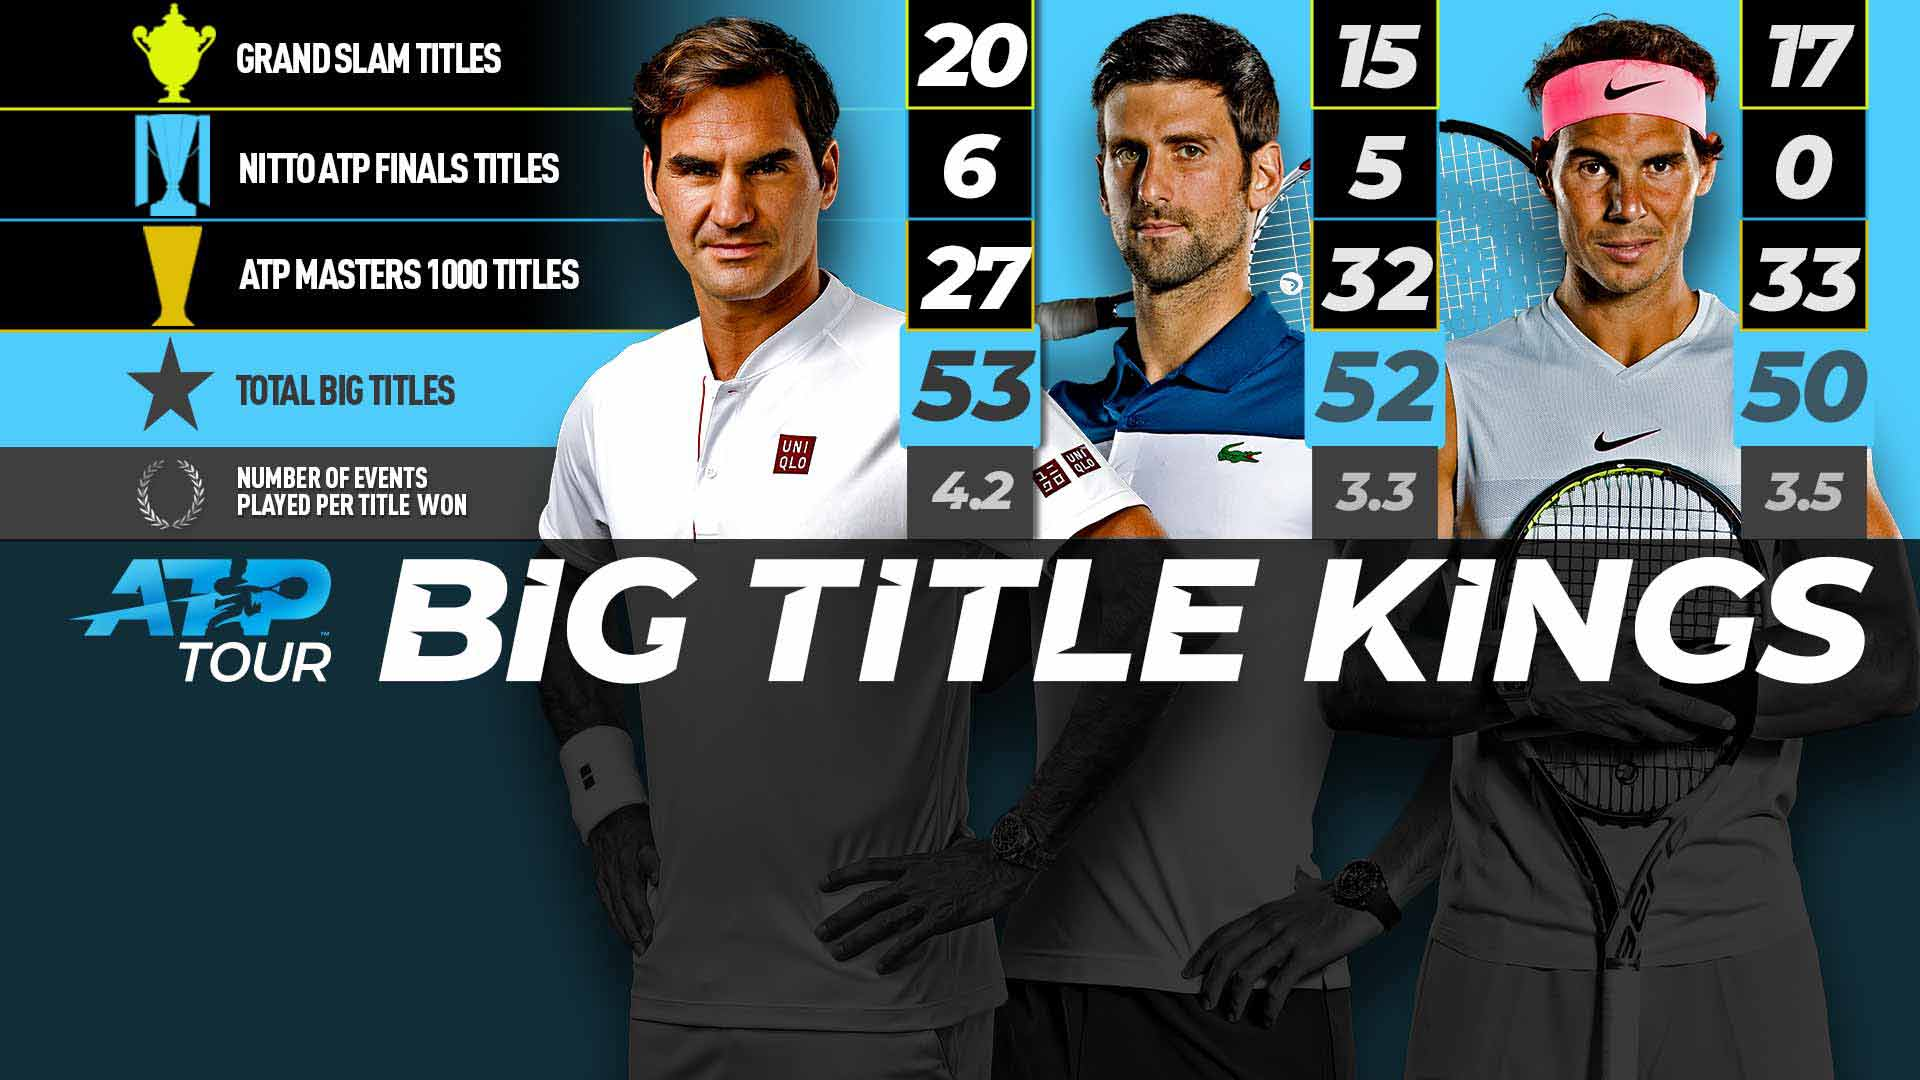 Novak Djokovic Big Title Kings